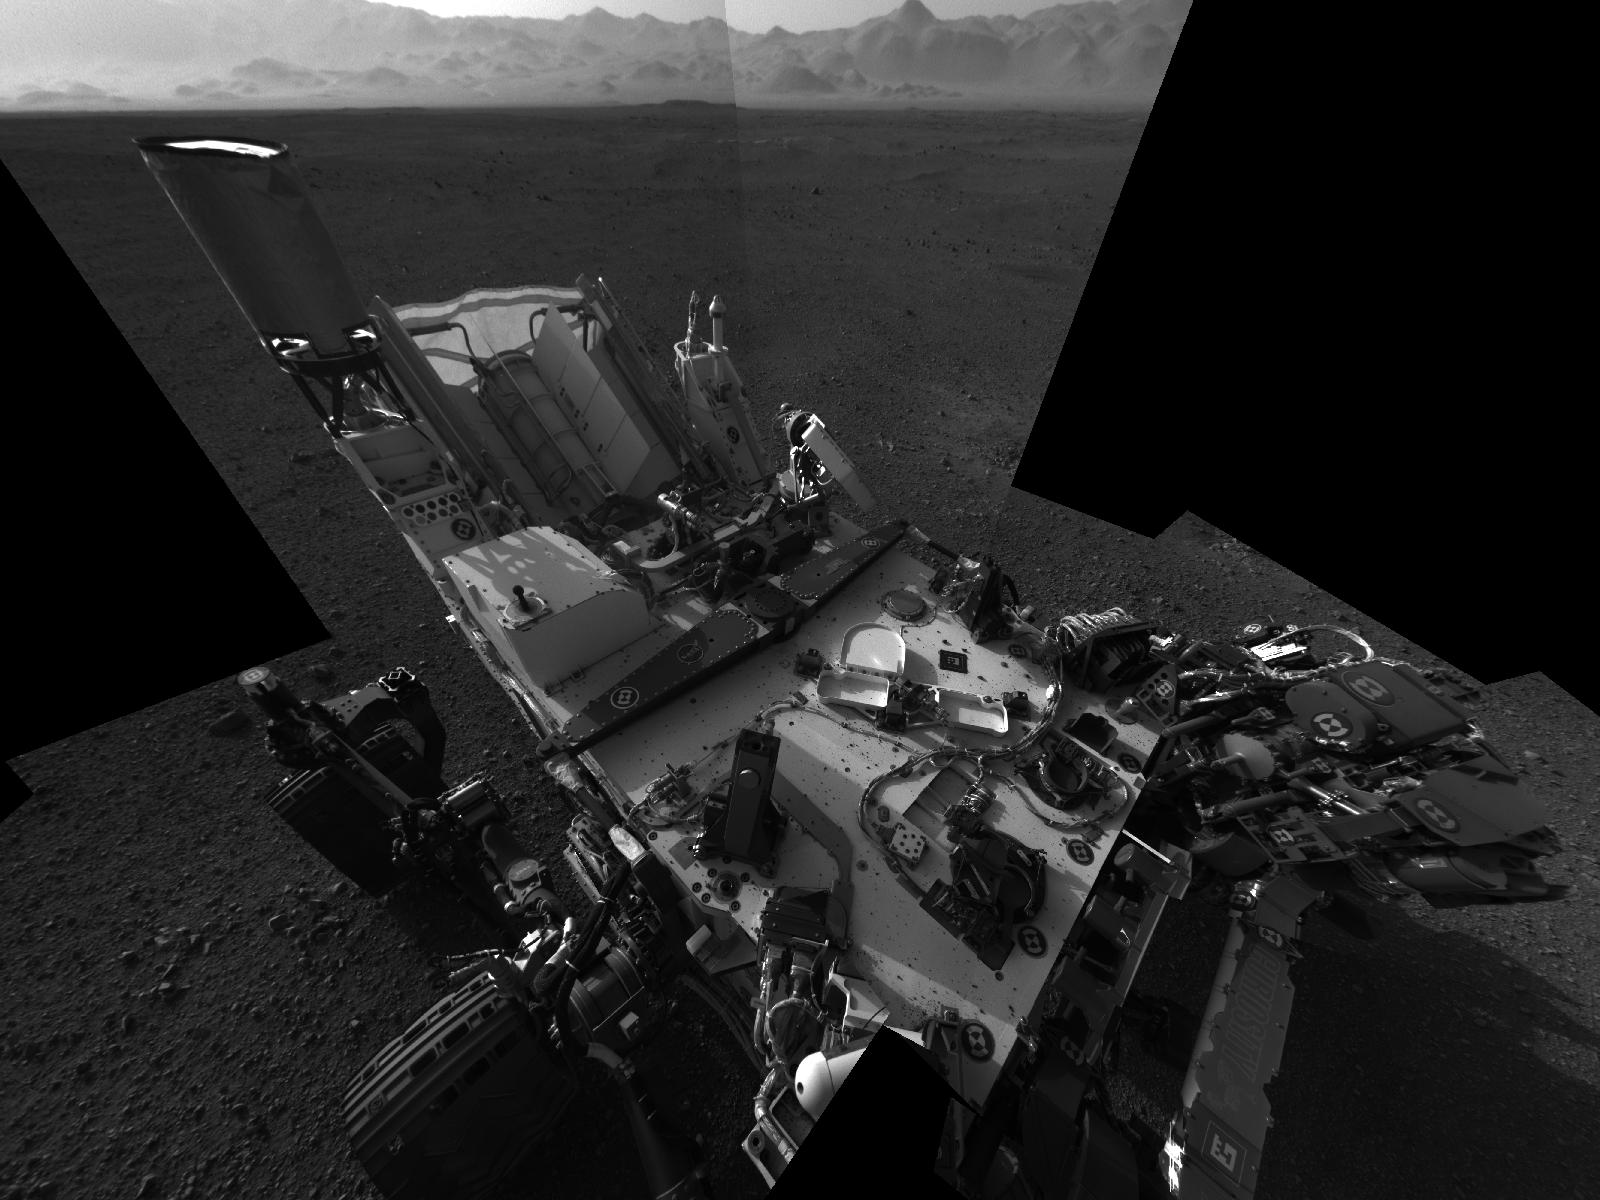 Does NASA's Curiosity Rover Have the Smarts to Find Life on Mars?